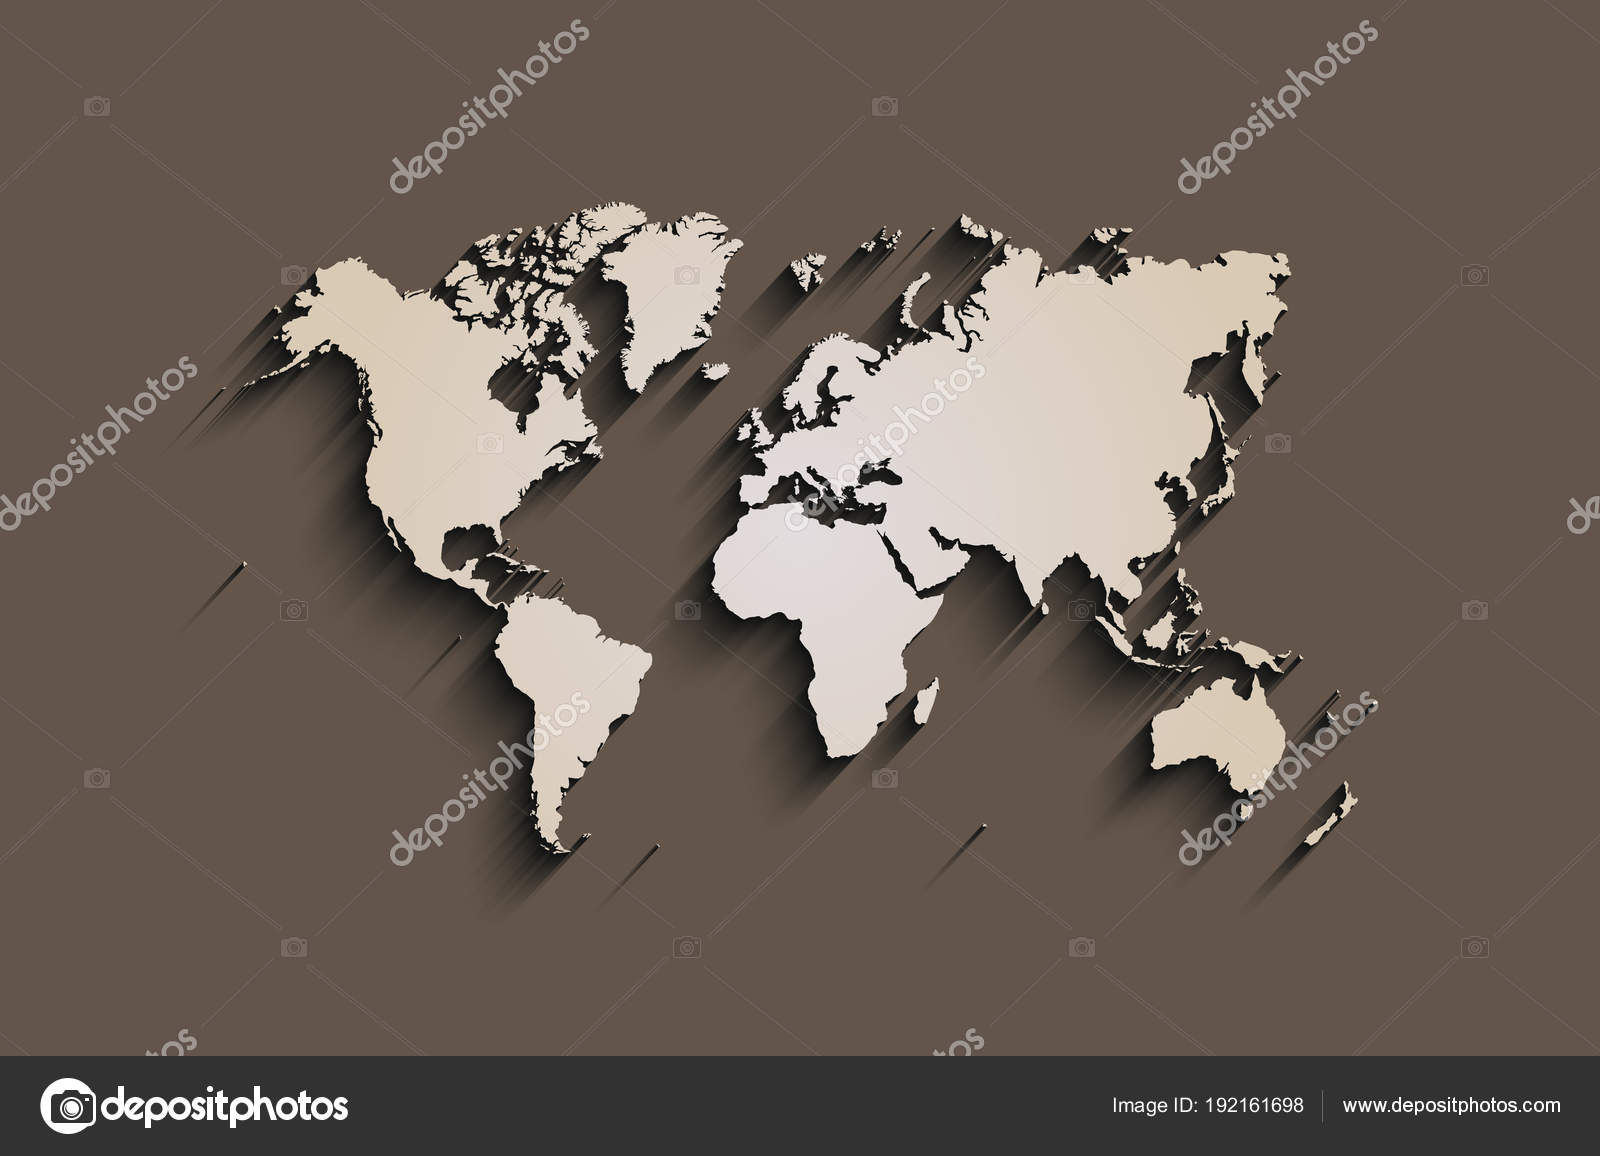 Flat World Map Abstract Vector Background For Wallpaper Banner